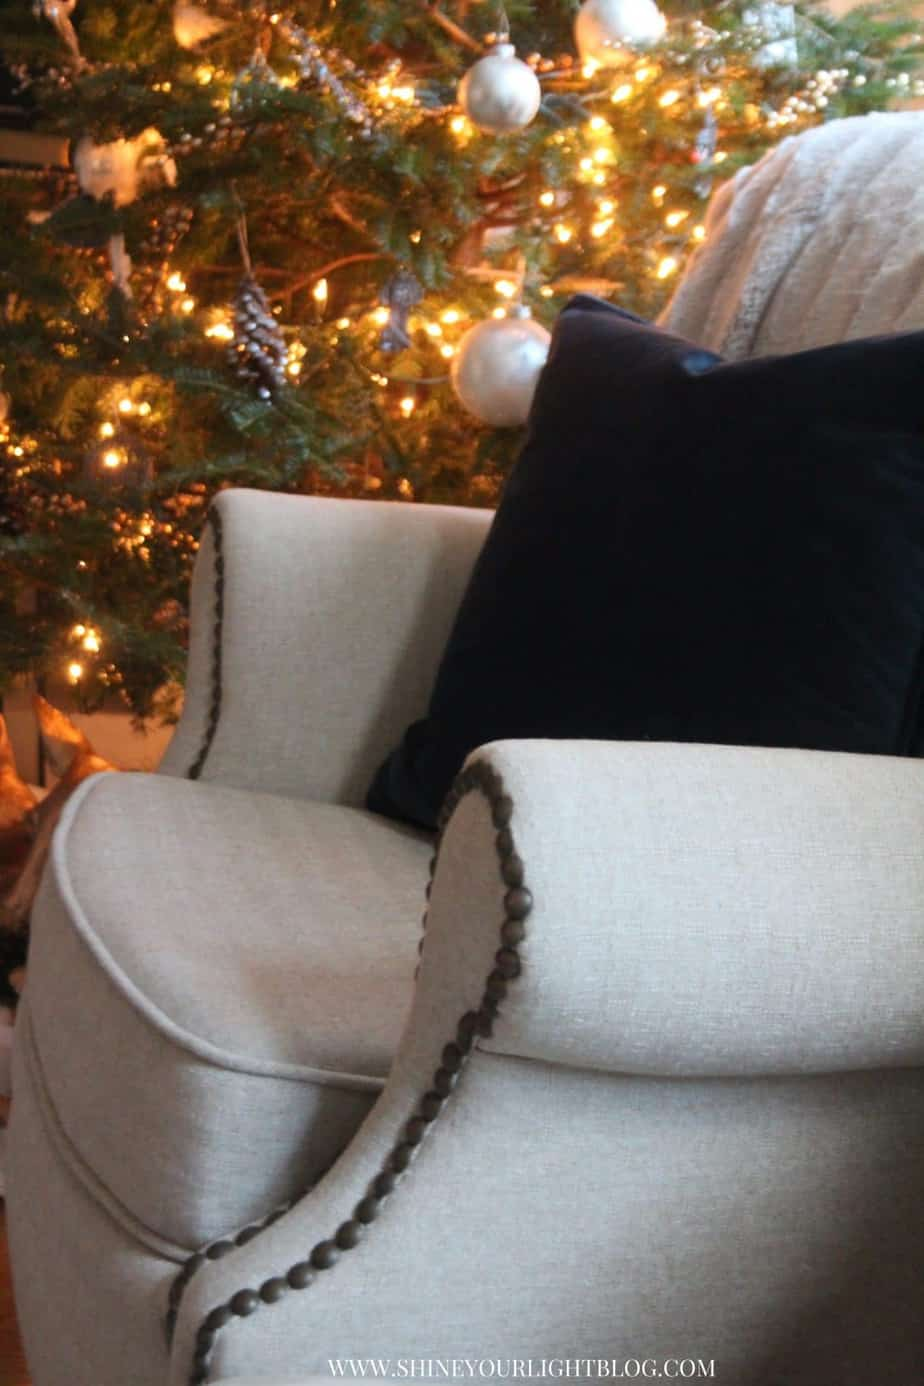 A comfy chair by the fire